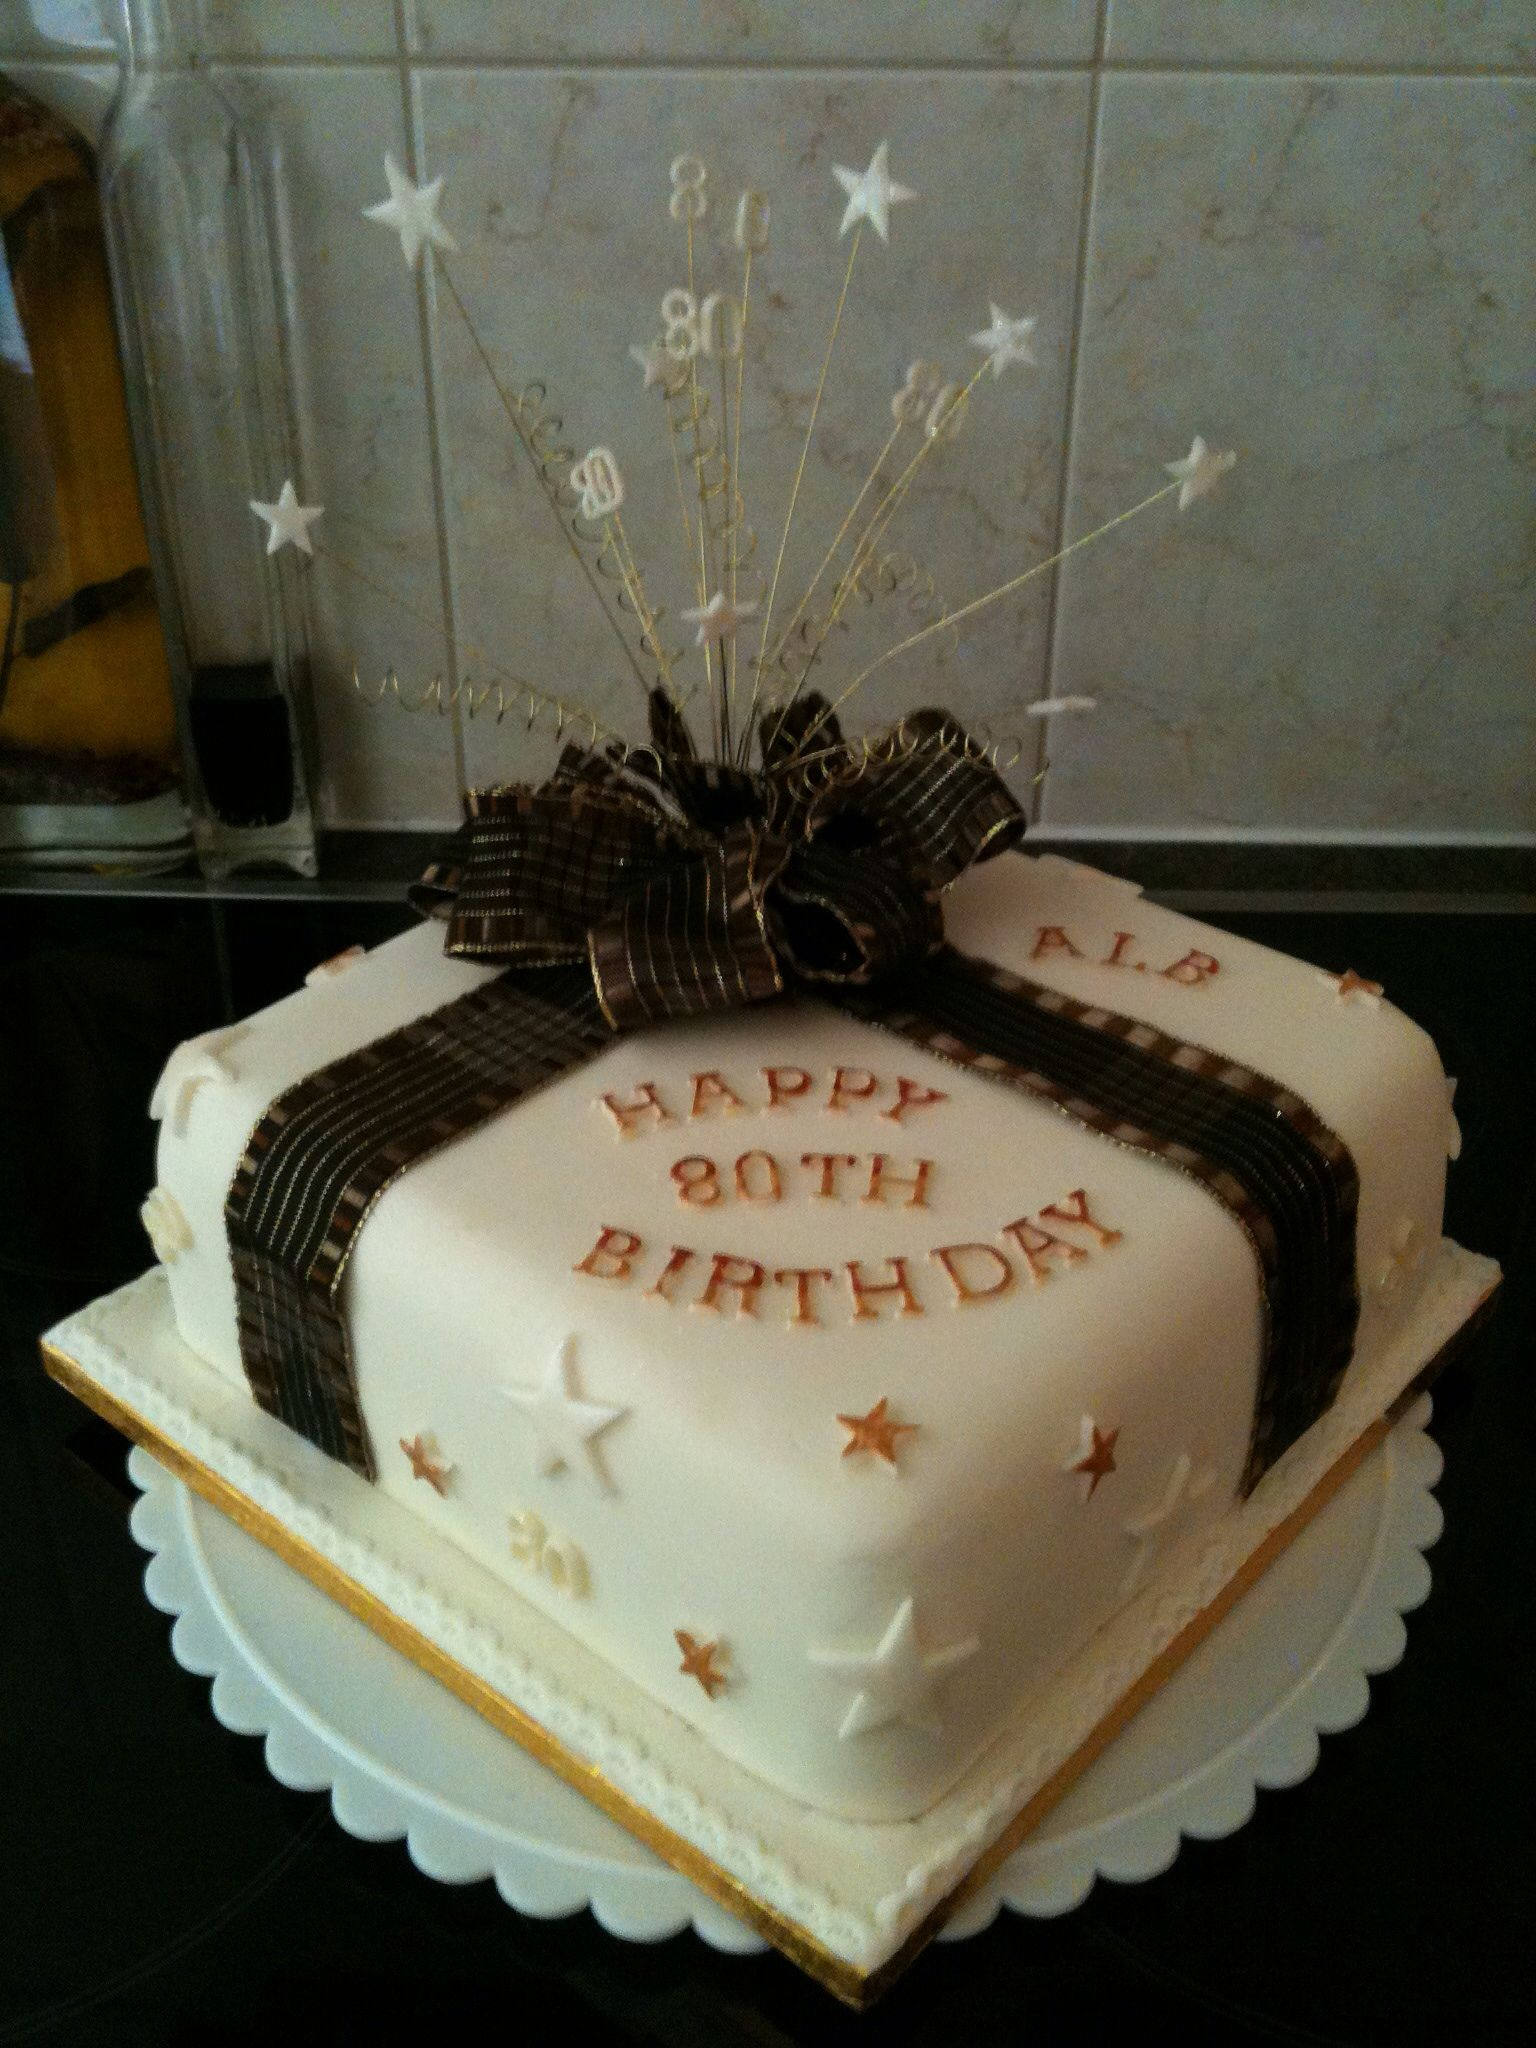 80th birthday Cake 80ste verjaardag koeke Pinterest ...